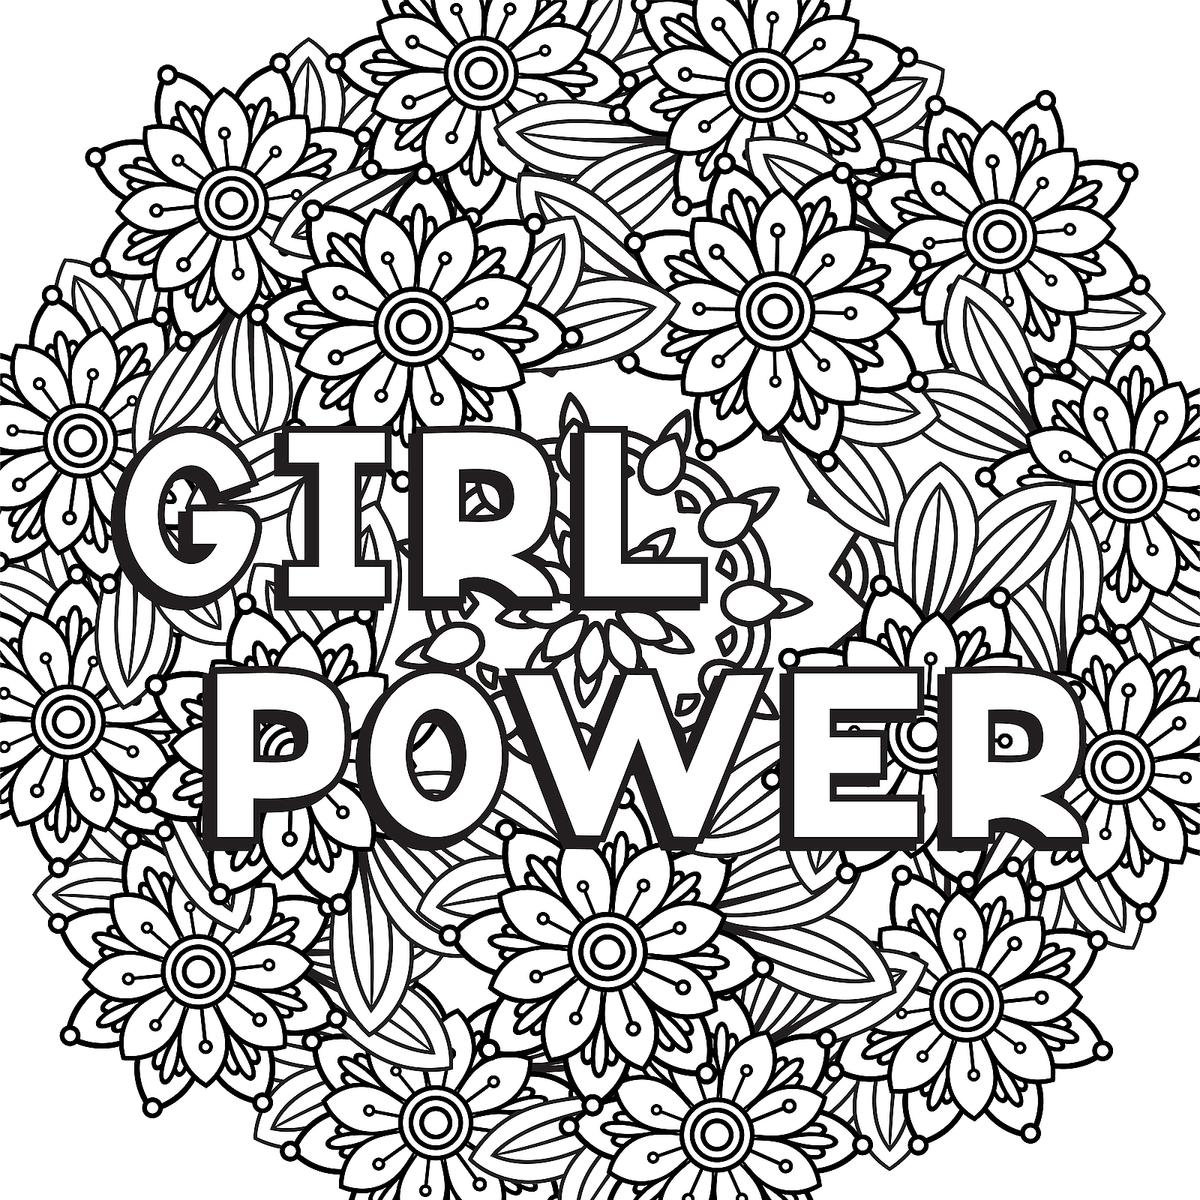 Strong Women Coloring Pages 10 Printable Coloring Pages For Badass Women Who Are Changing The World Printables 30seconds Mom